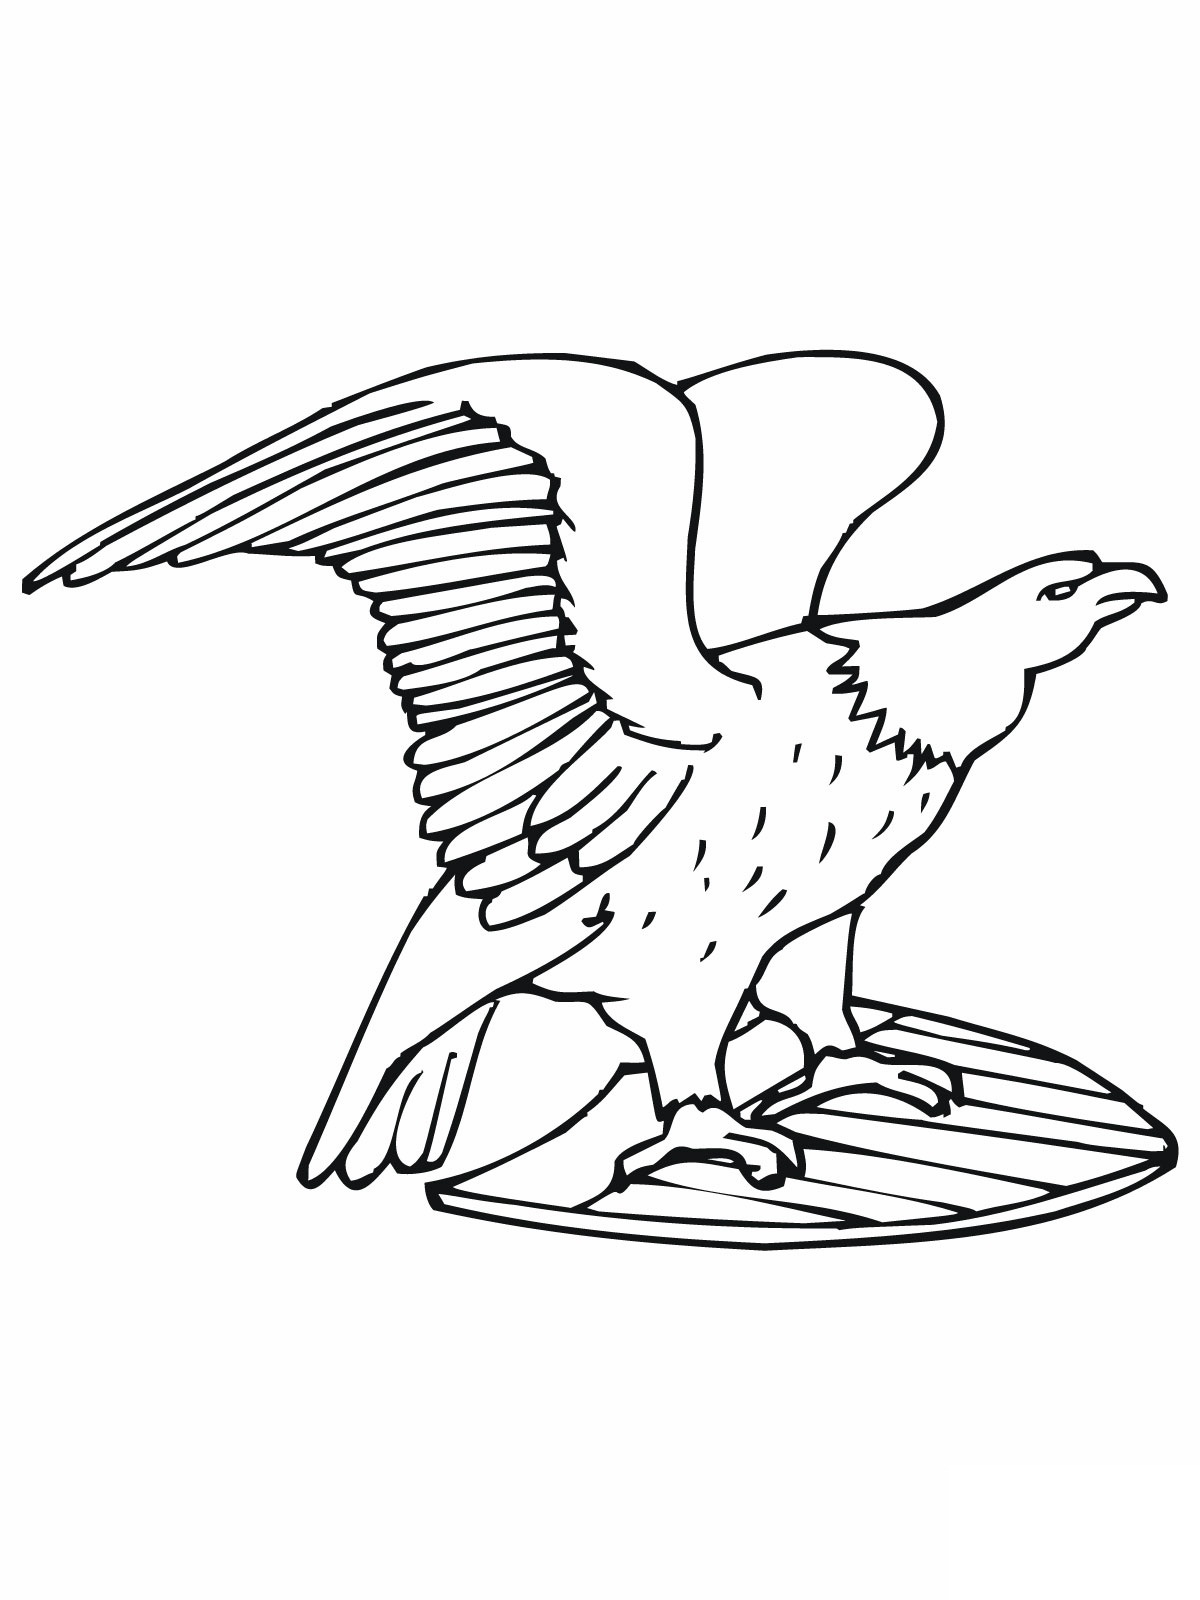 free bald eagle coloring pages - American Bald Eagle Coloring Page